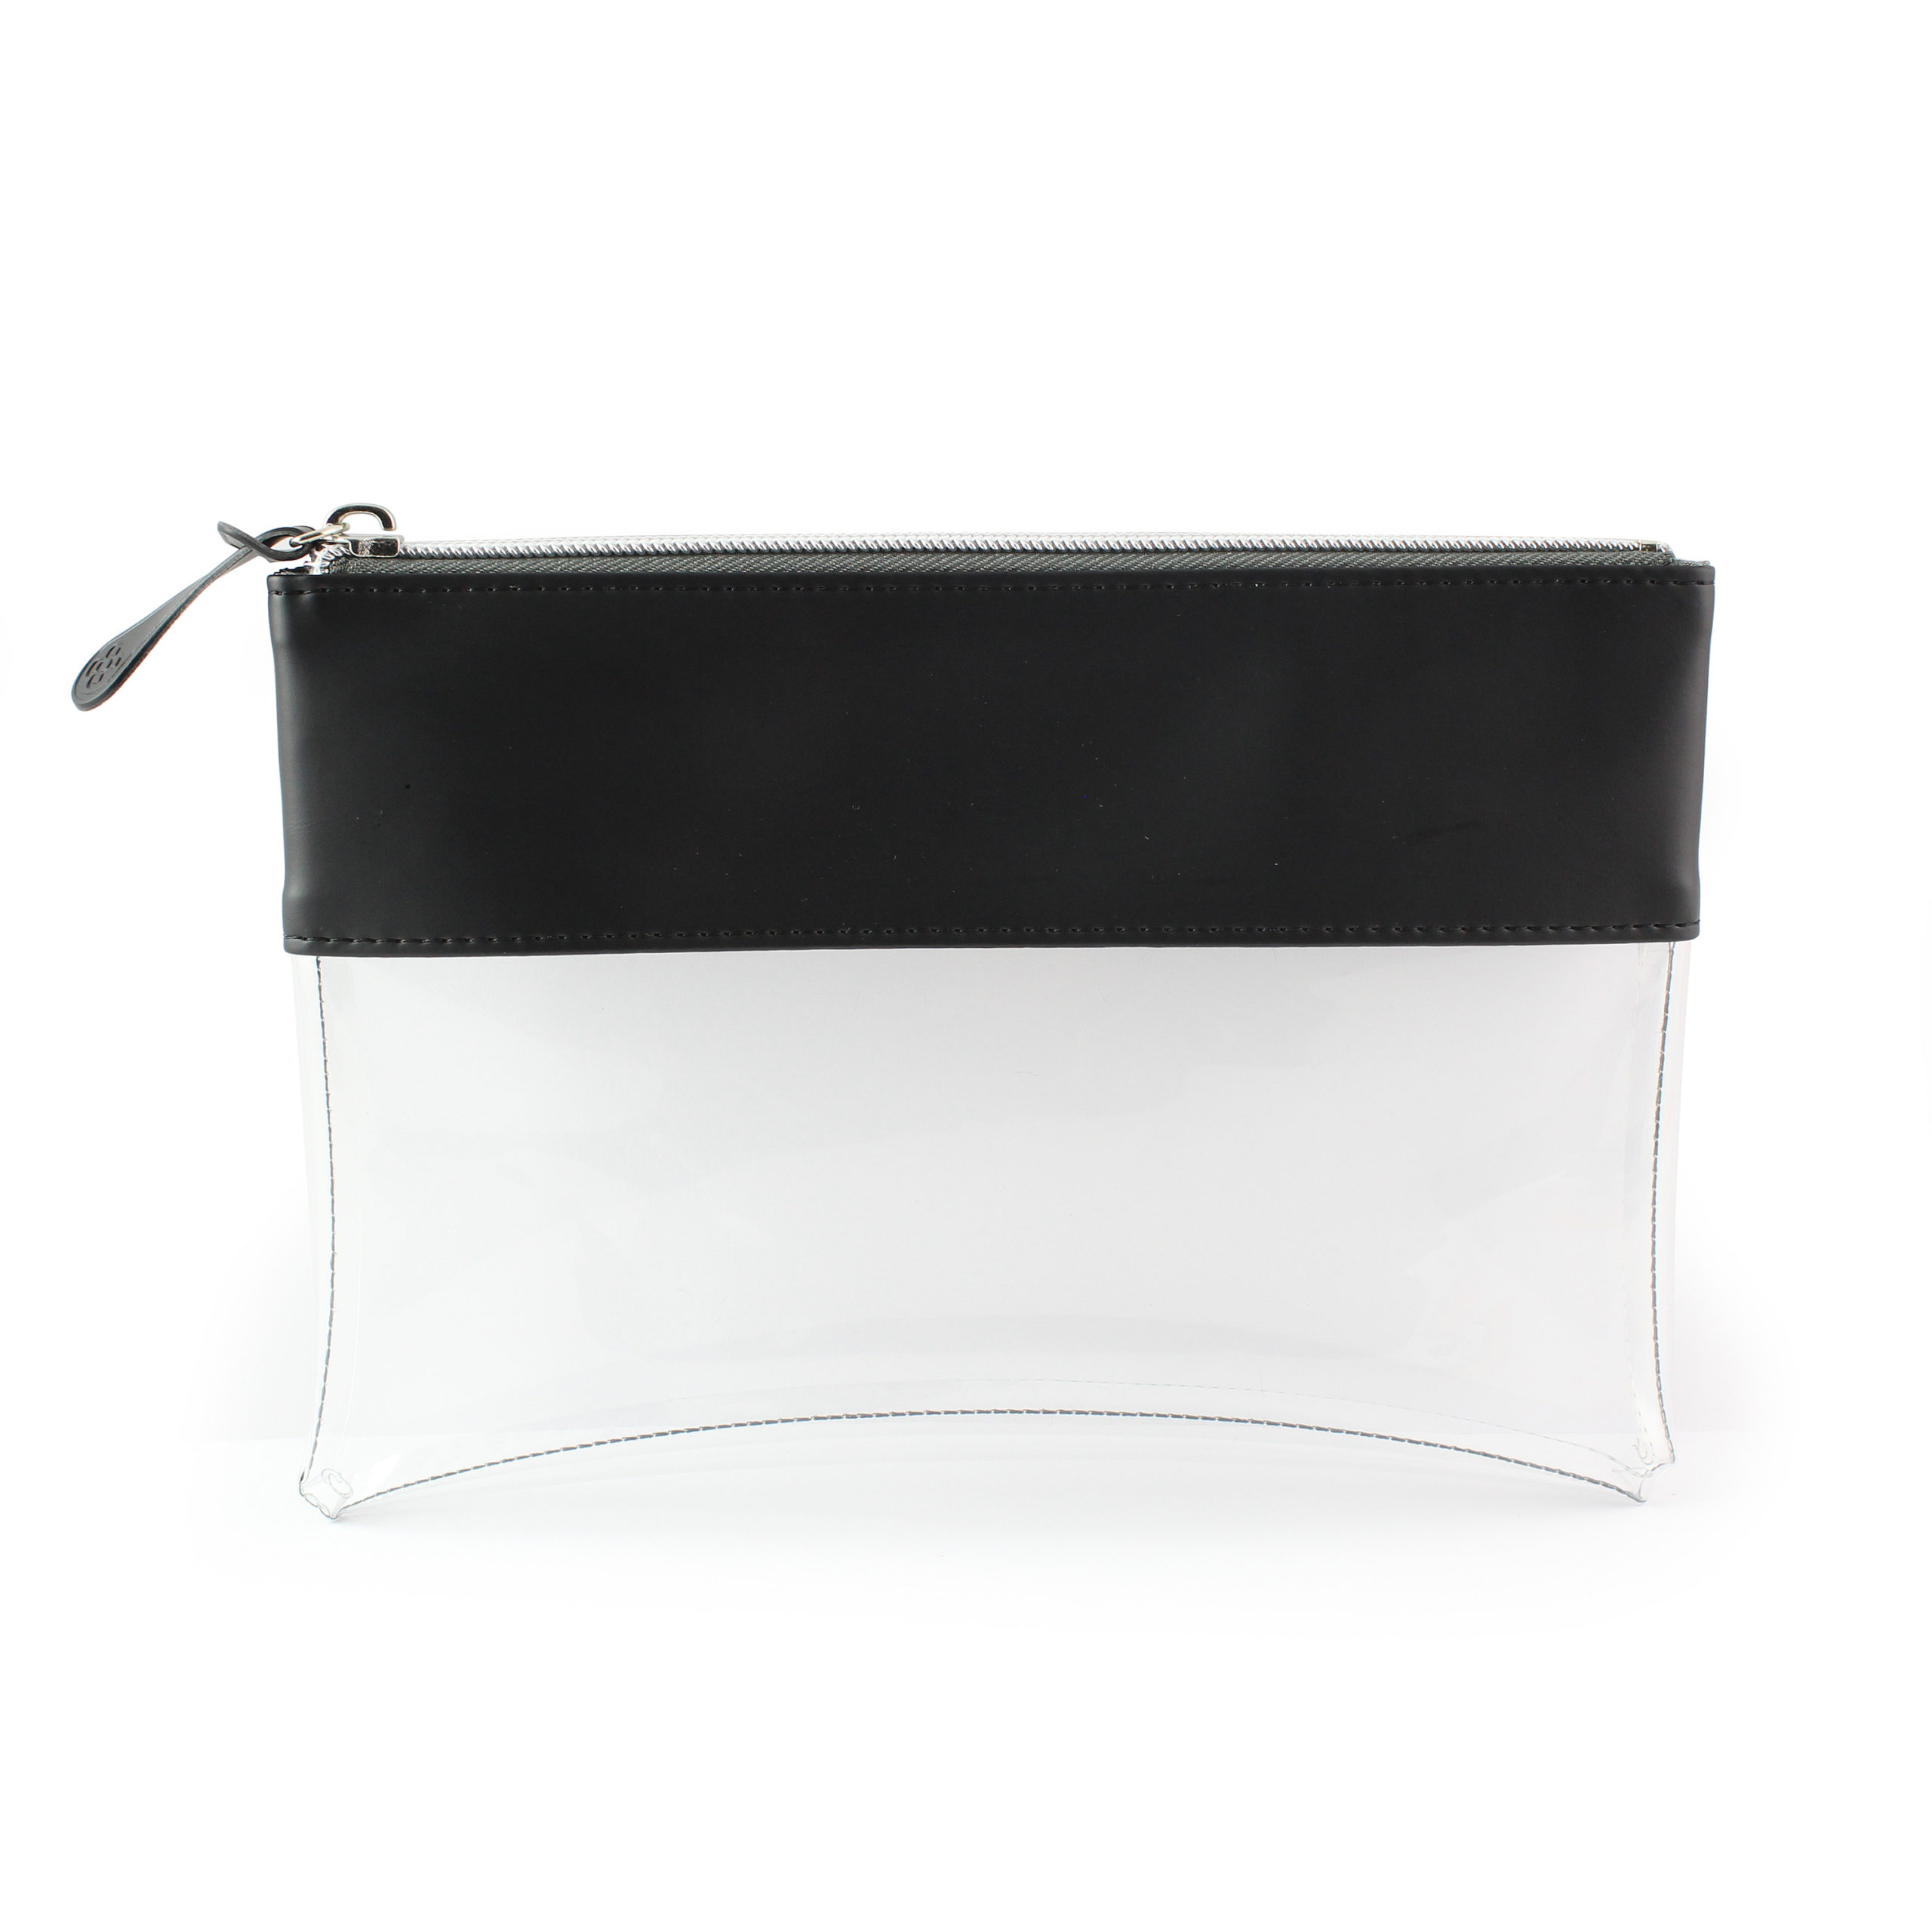 Black Clear Pouch ideal as a travel pouch or pencil case.